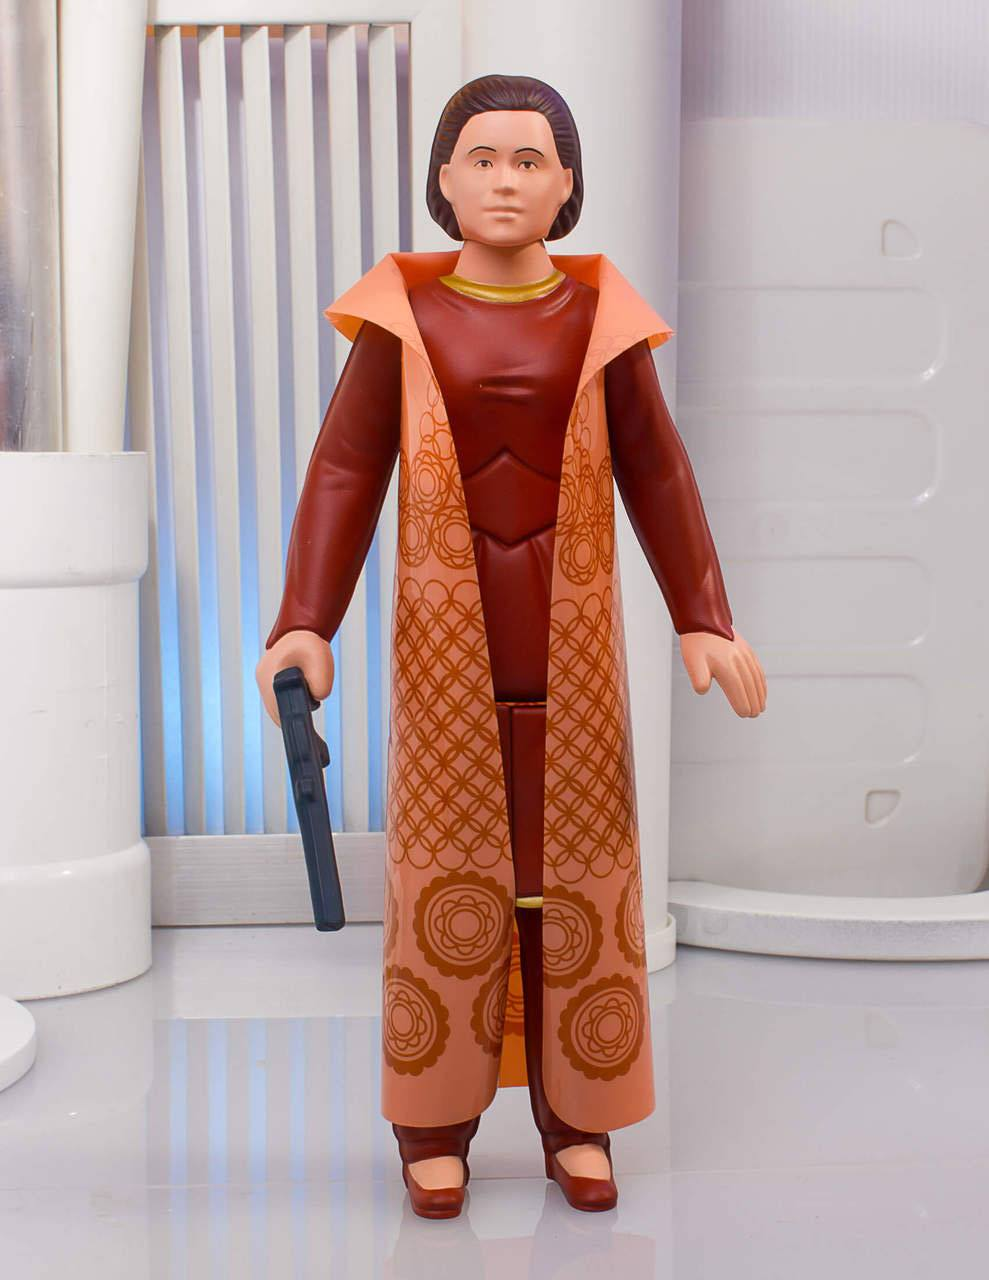 Star Wars Jumbo Vintage Kenner Action Figure Leia Organa (Bespin Gown) 30 cm